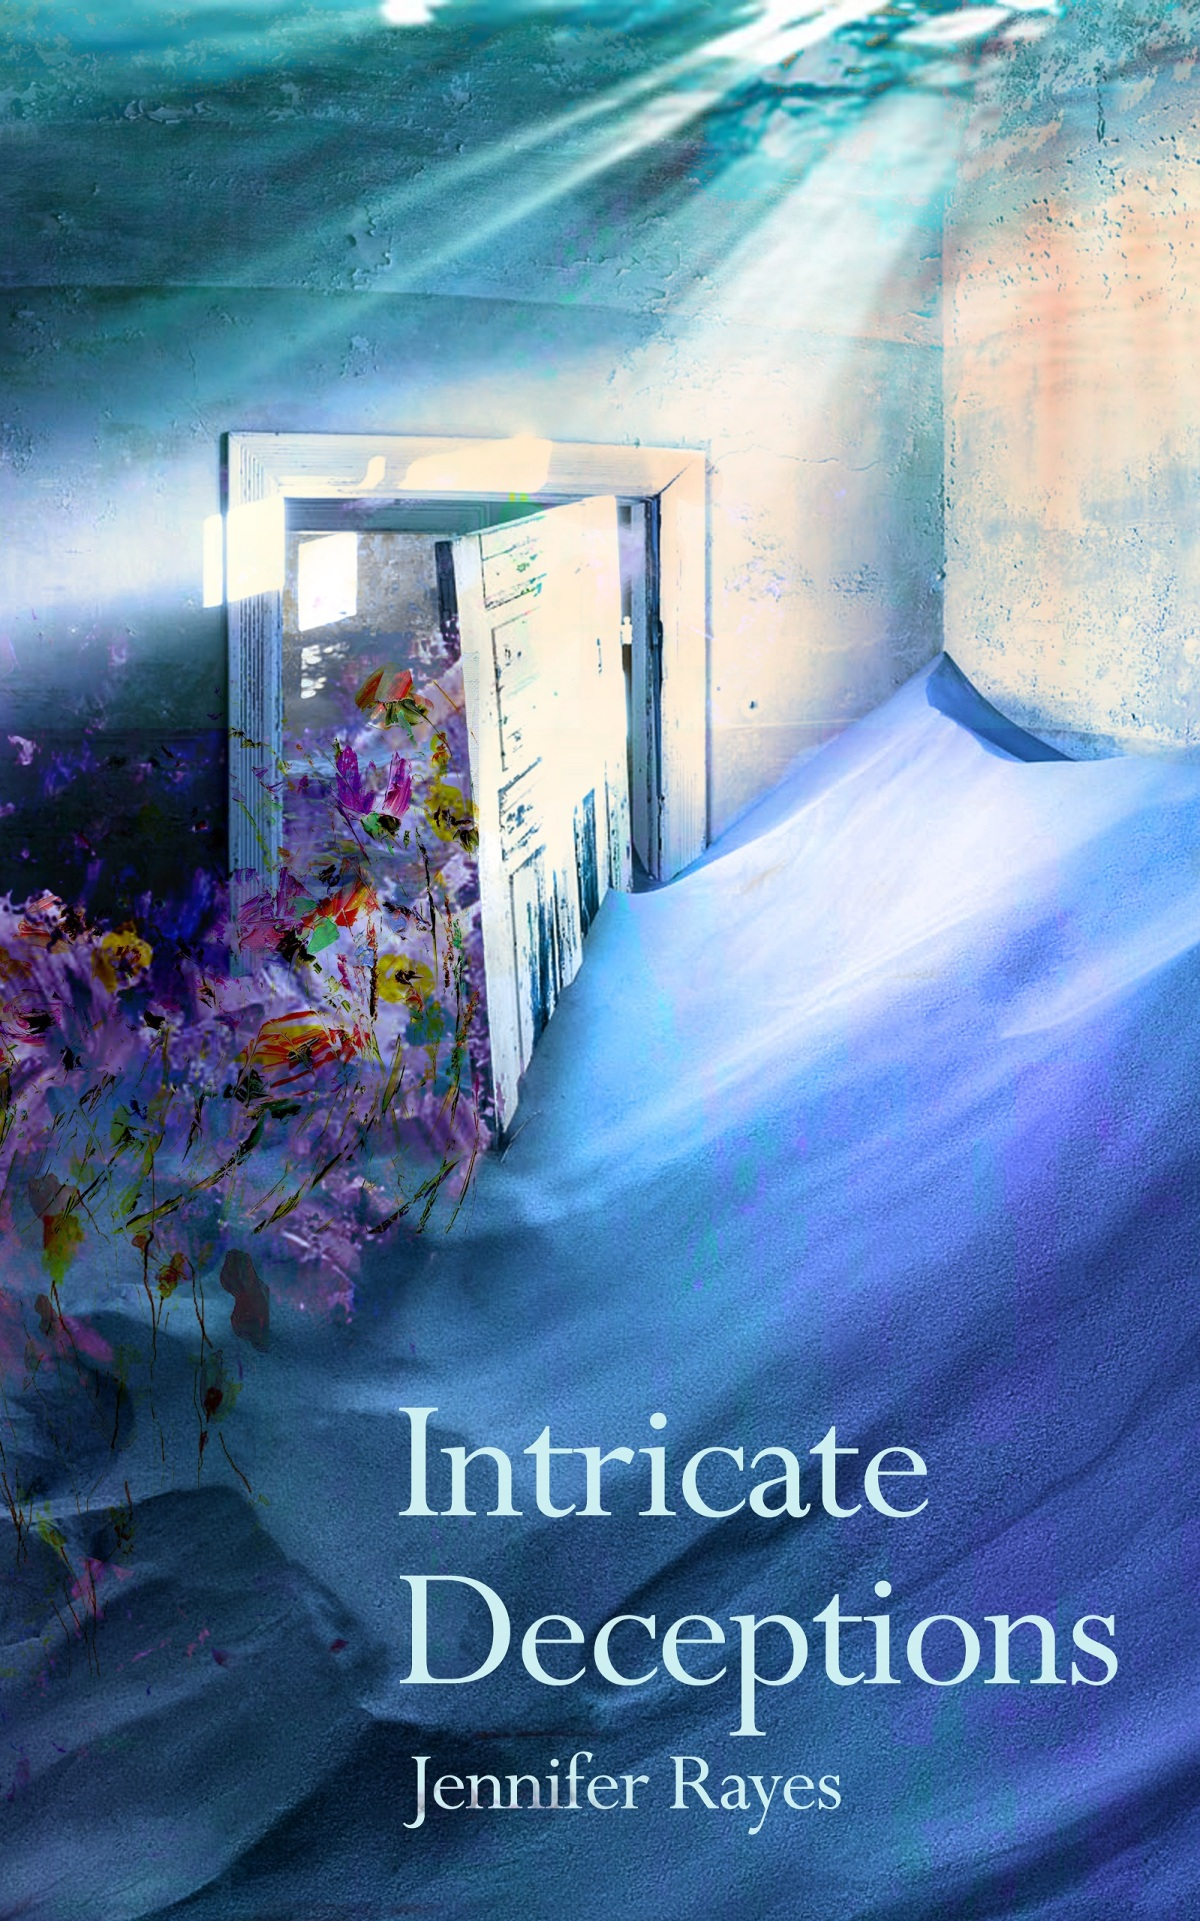 Intricate Deceptions (Intricate, #1) by Jennifer Rayes Review